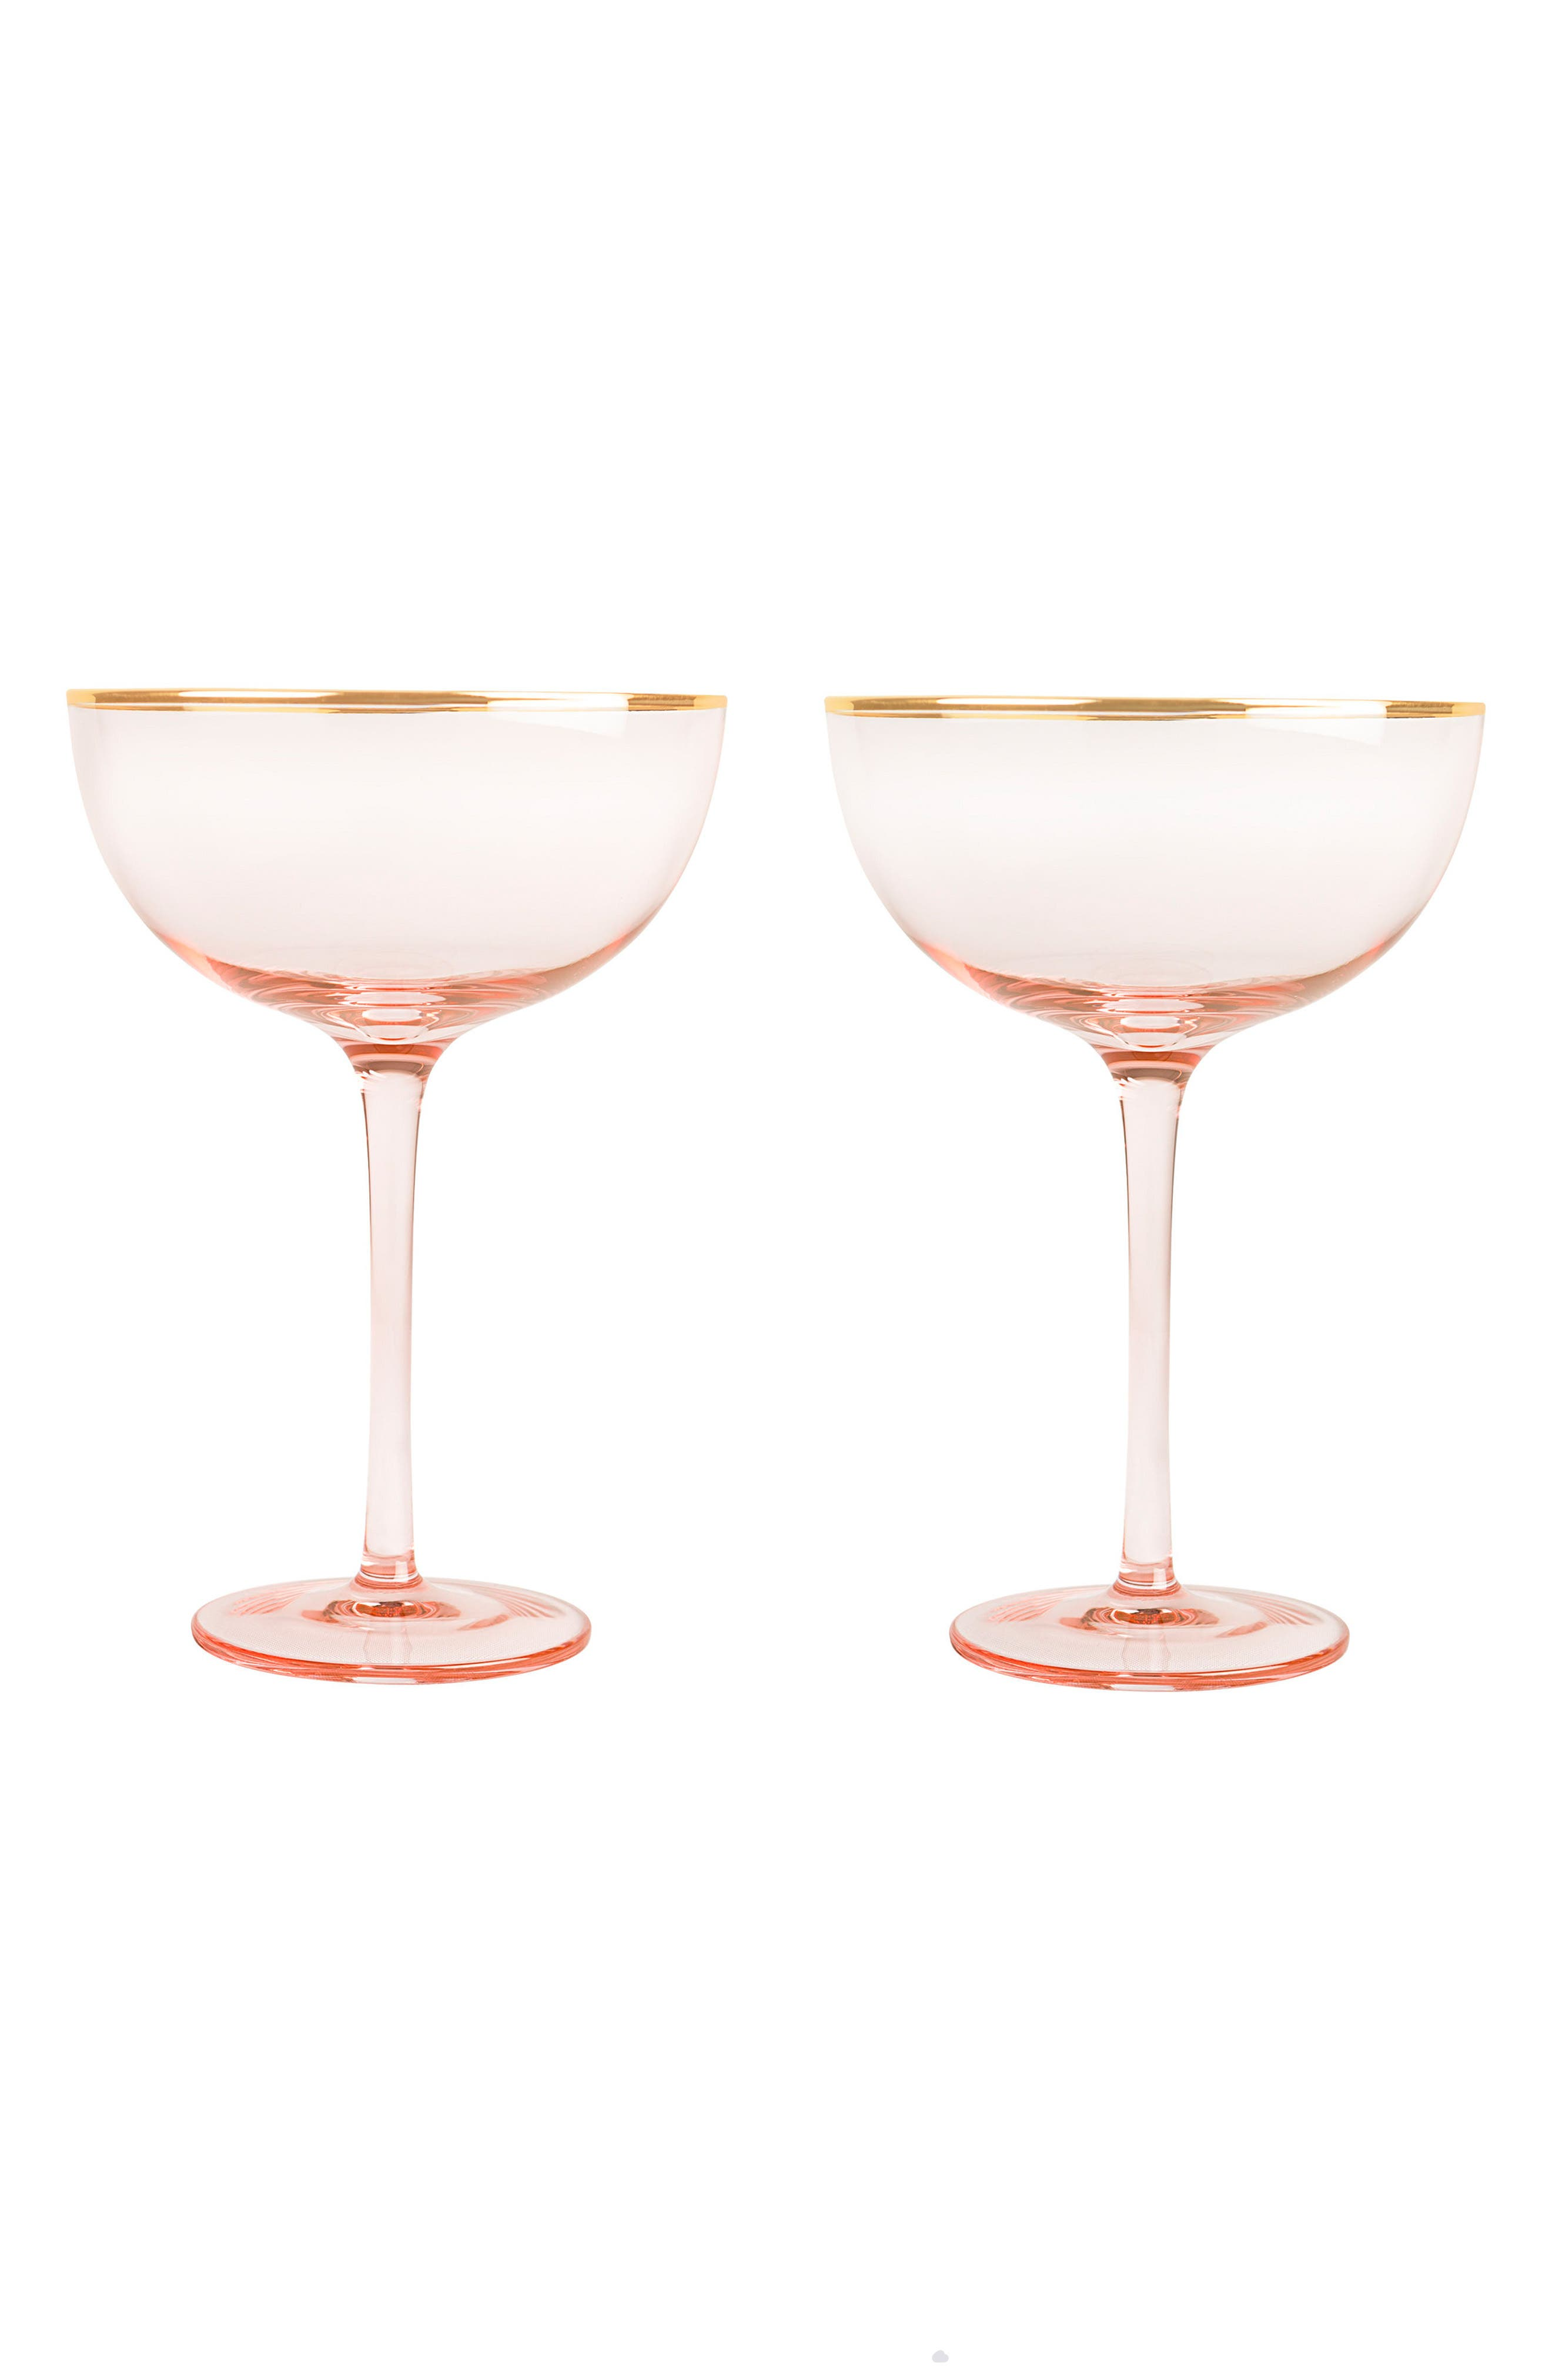 Monogram Set of 2 Champagne Coupes,                         Main,                         color, 220